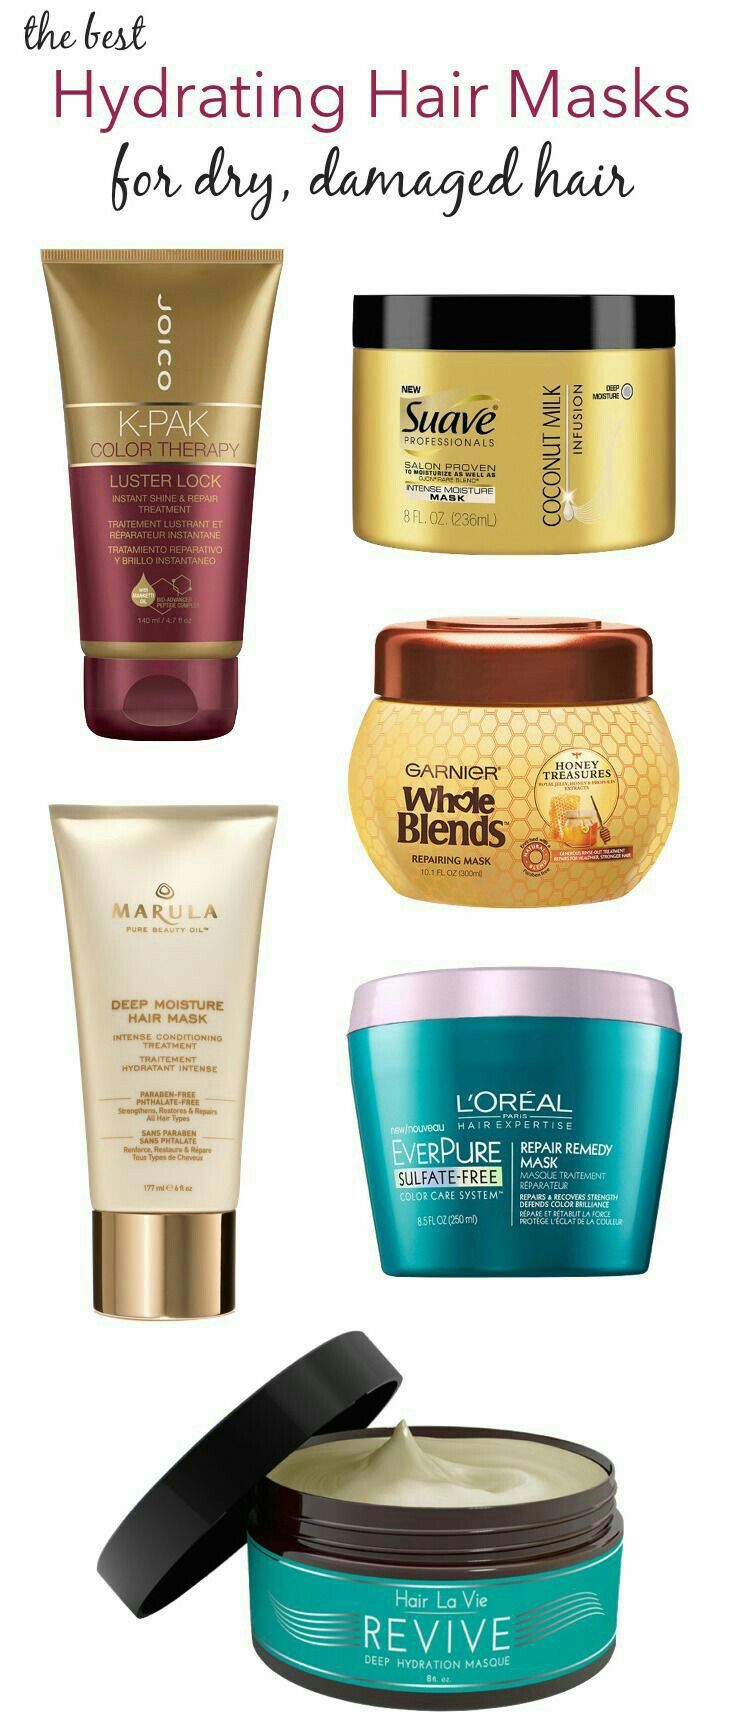 Pin by Patty Awai on Drugstore hair products Hair mask